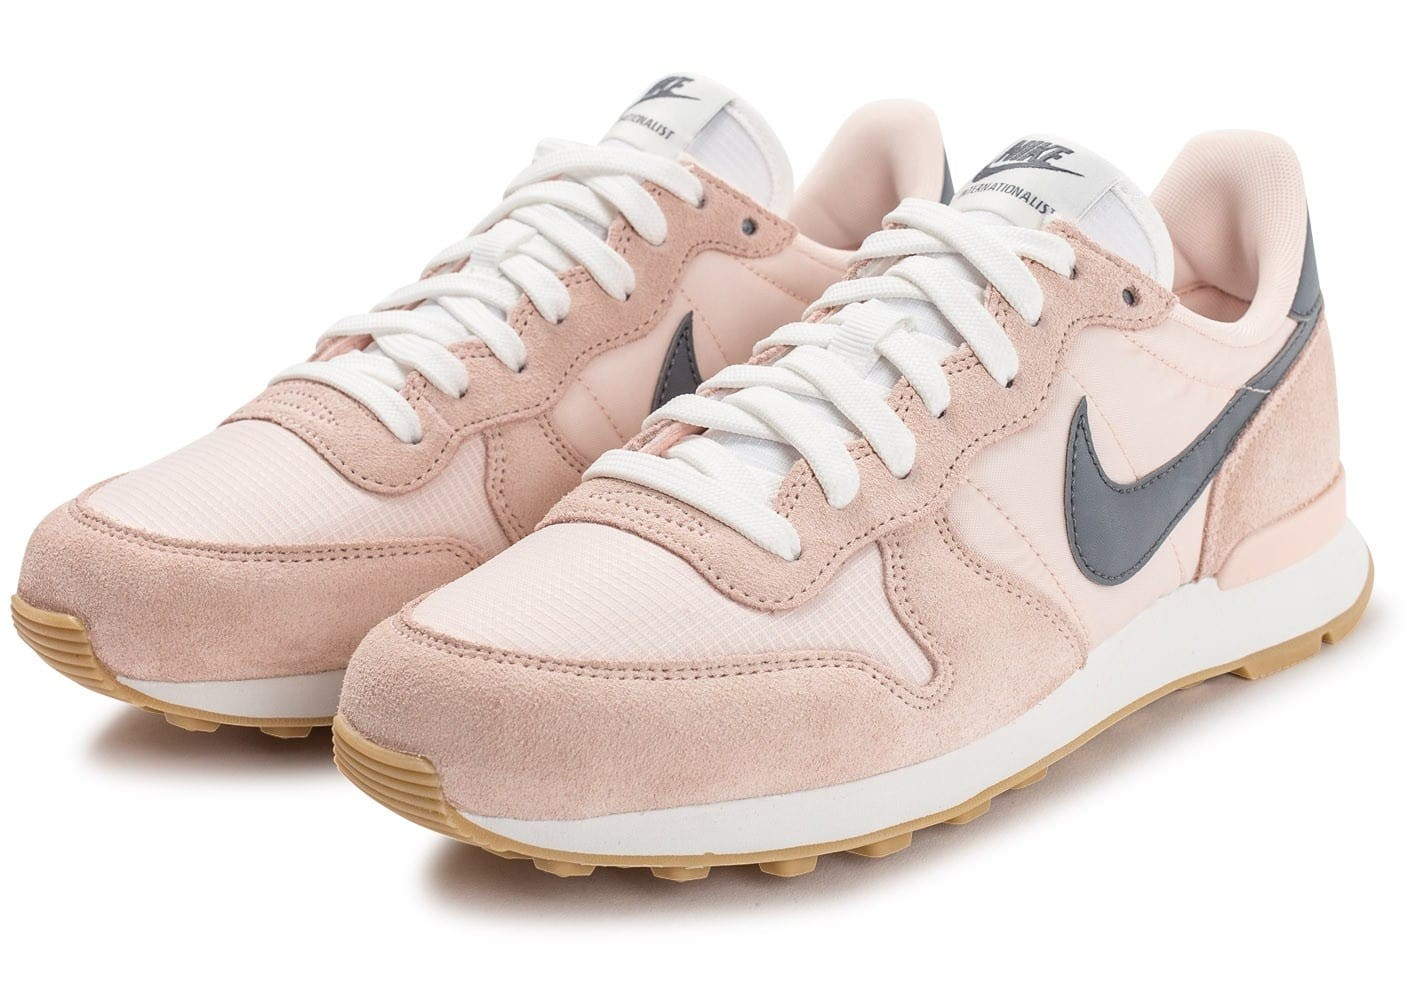 nike internationalist femme floral